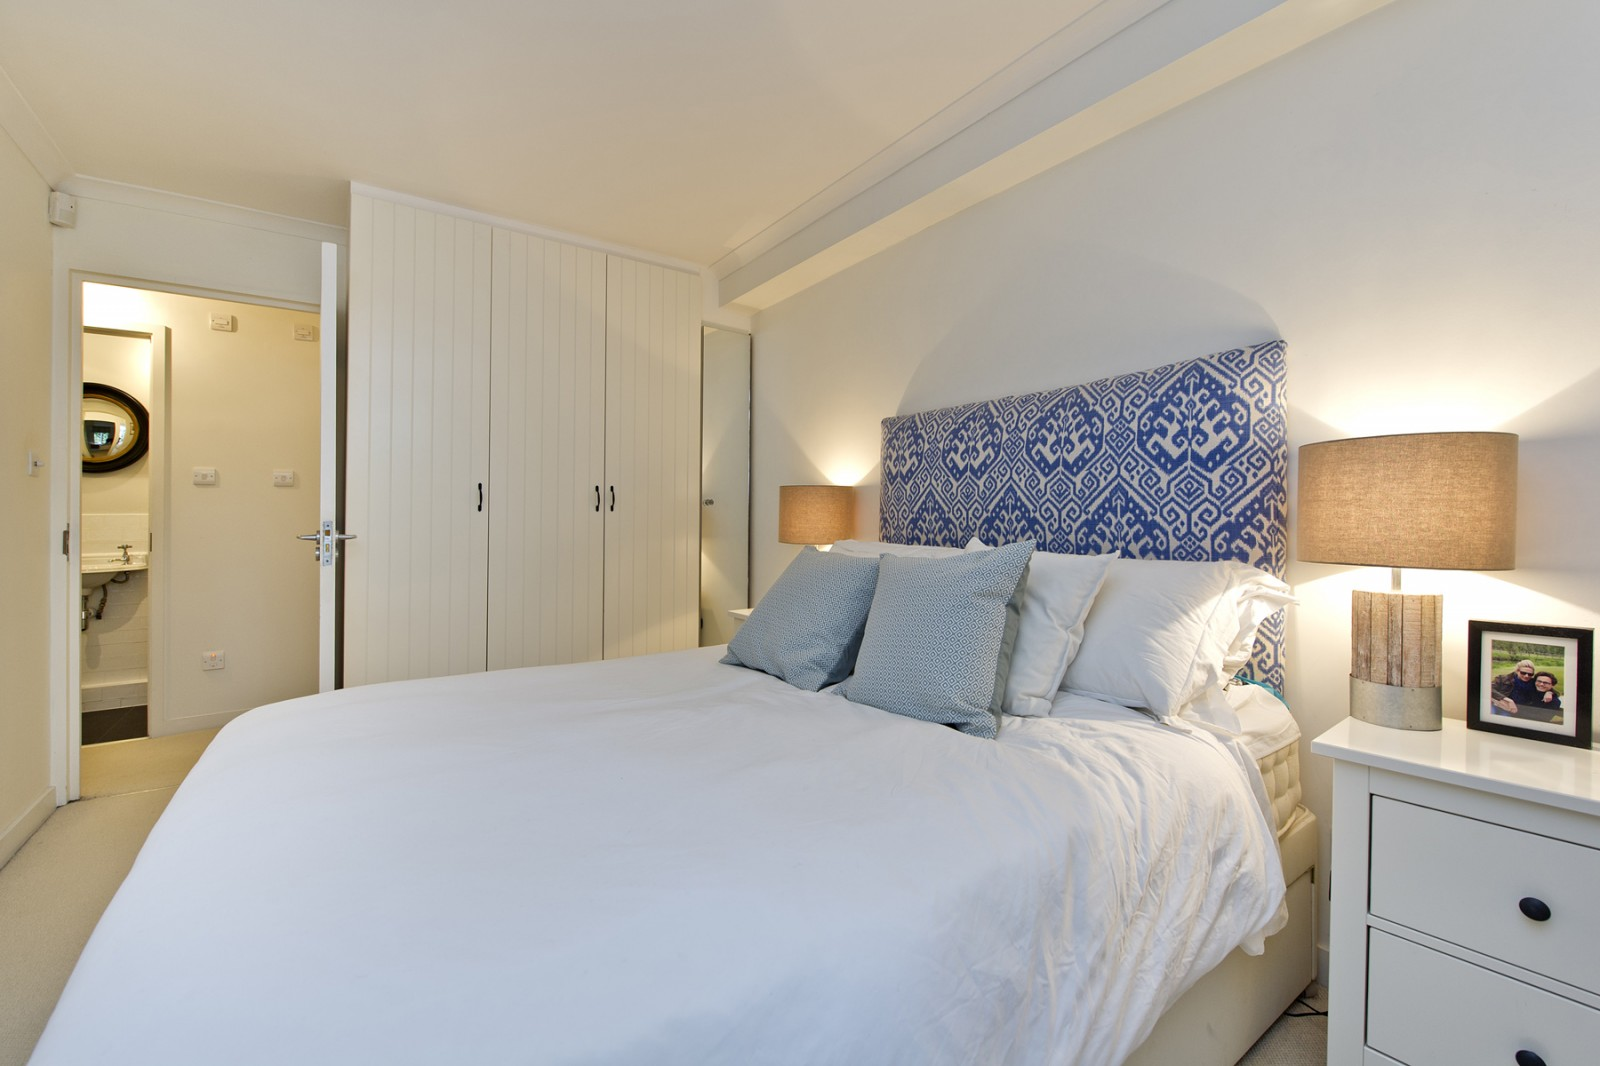 2 bedroom Notting Hill flat for sale - Powis Square, W11